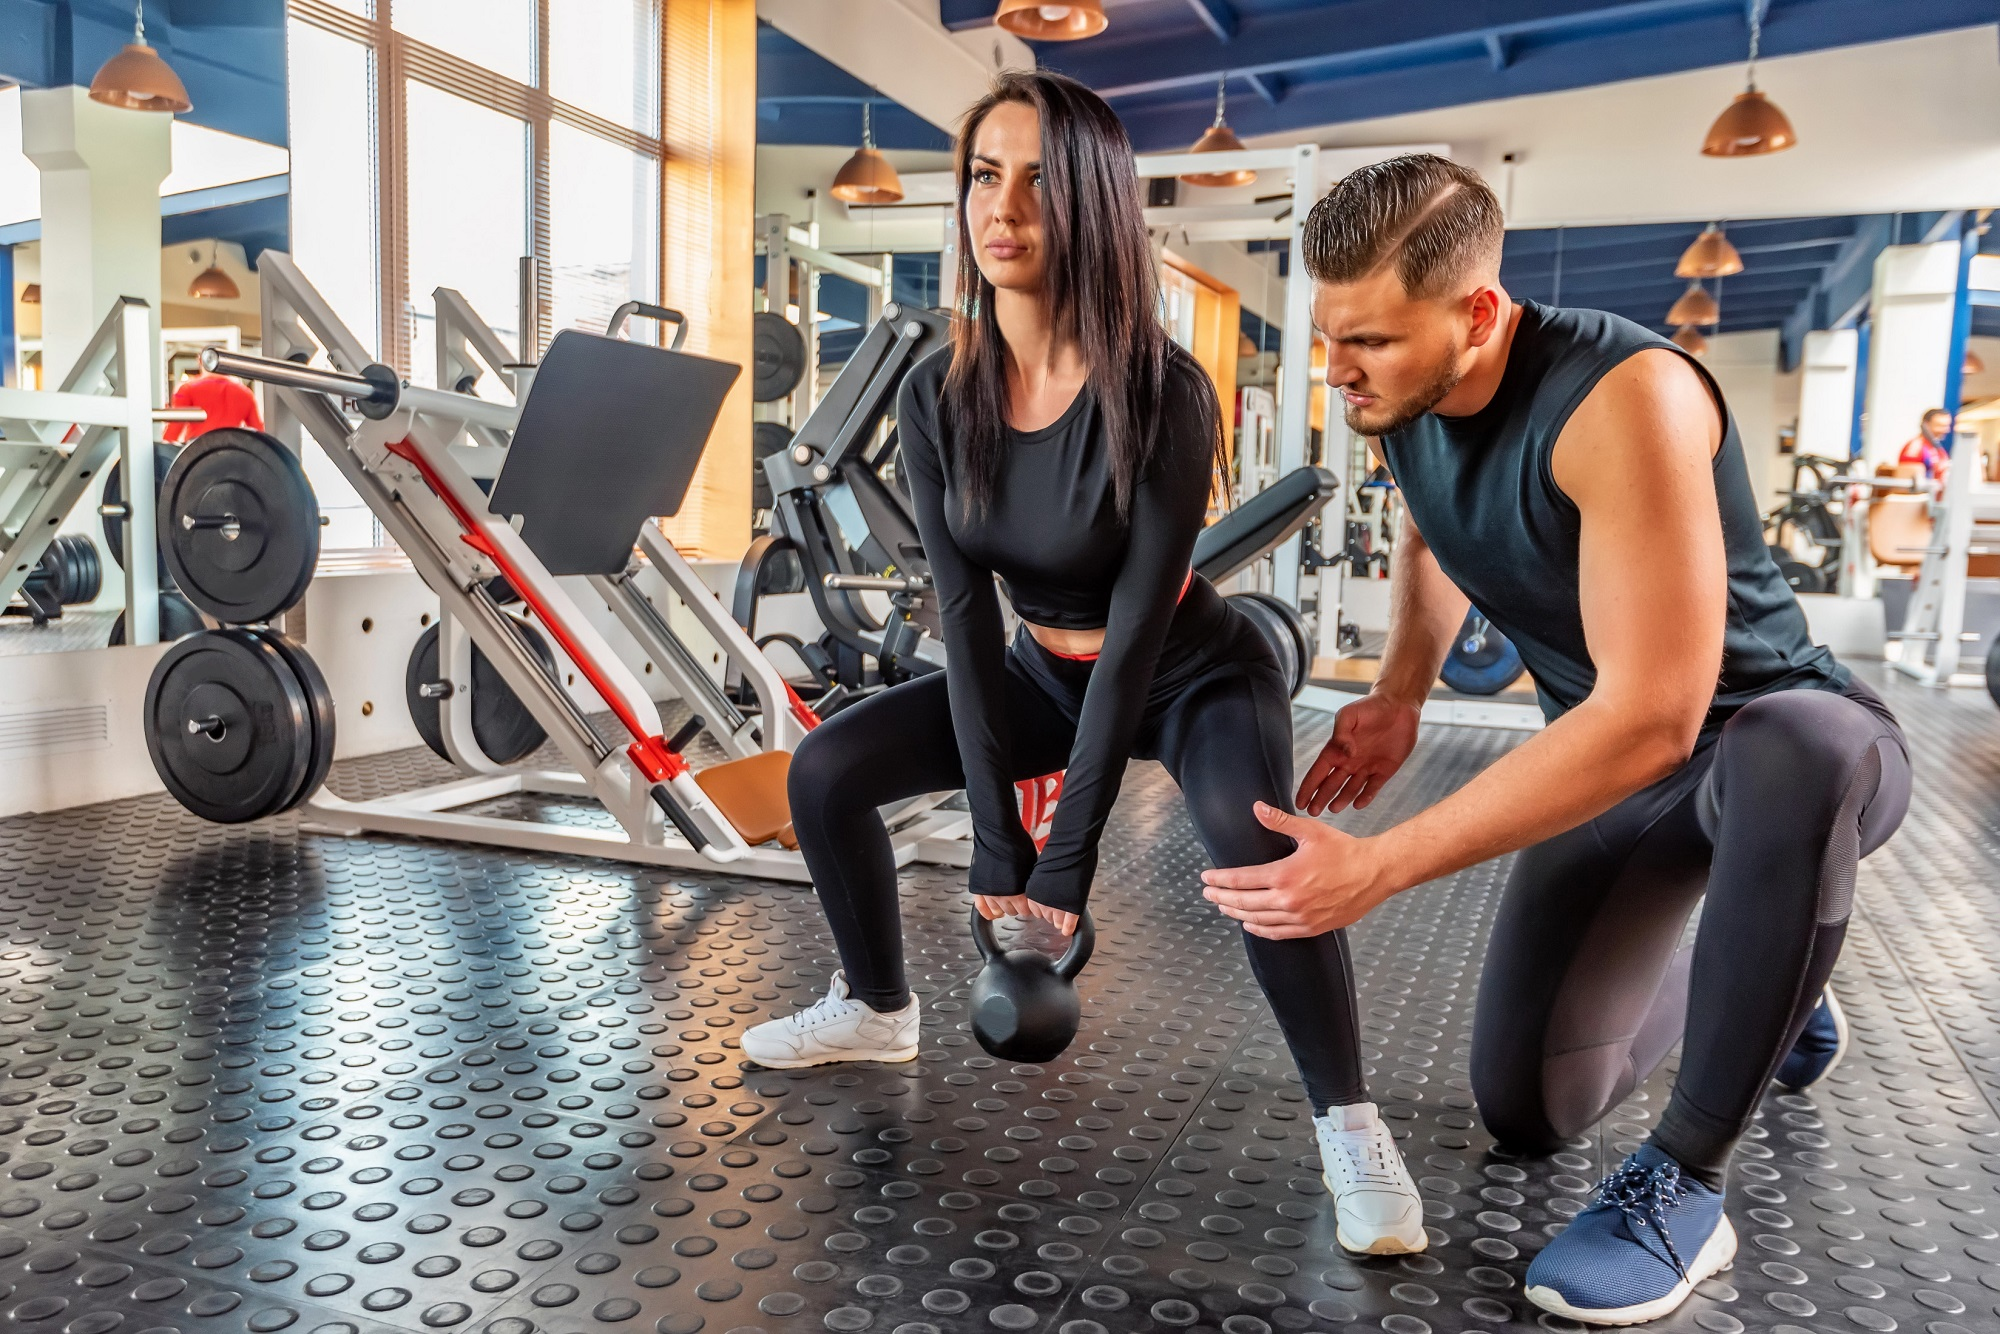 Personal trainer coaching female bodybuilder making plie squat with dumbbell